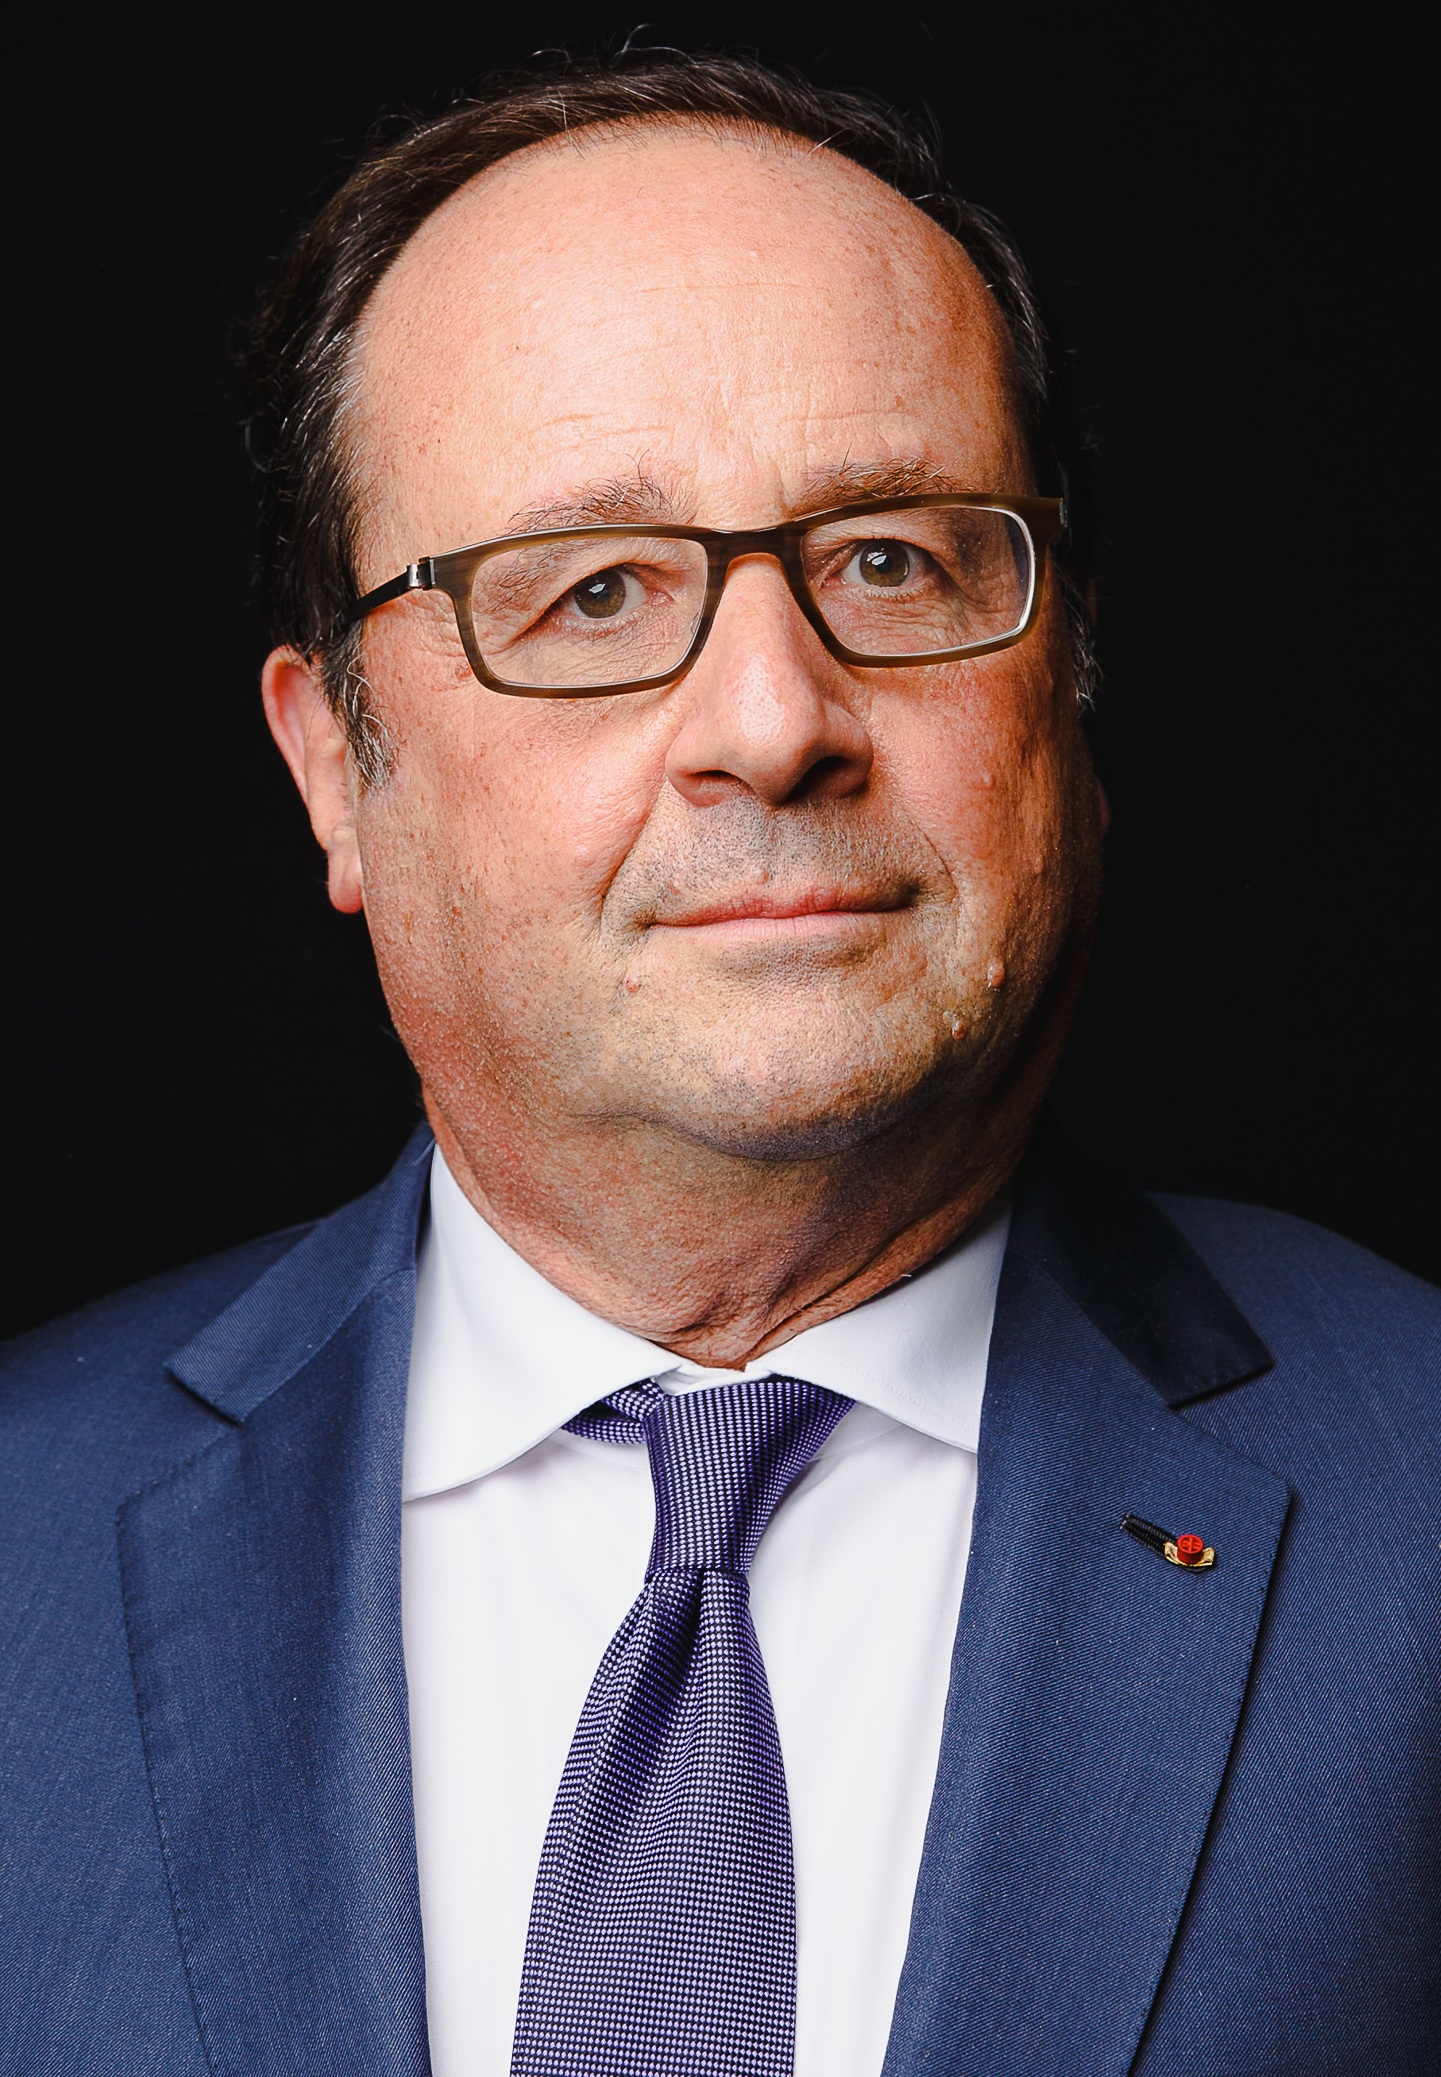 "<a href=""/francois-hollande""><span style=""color:#444;""><strong>François Hollande</strong>Former President of France</span></a>"